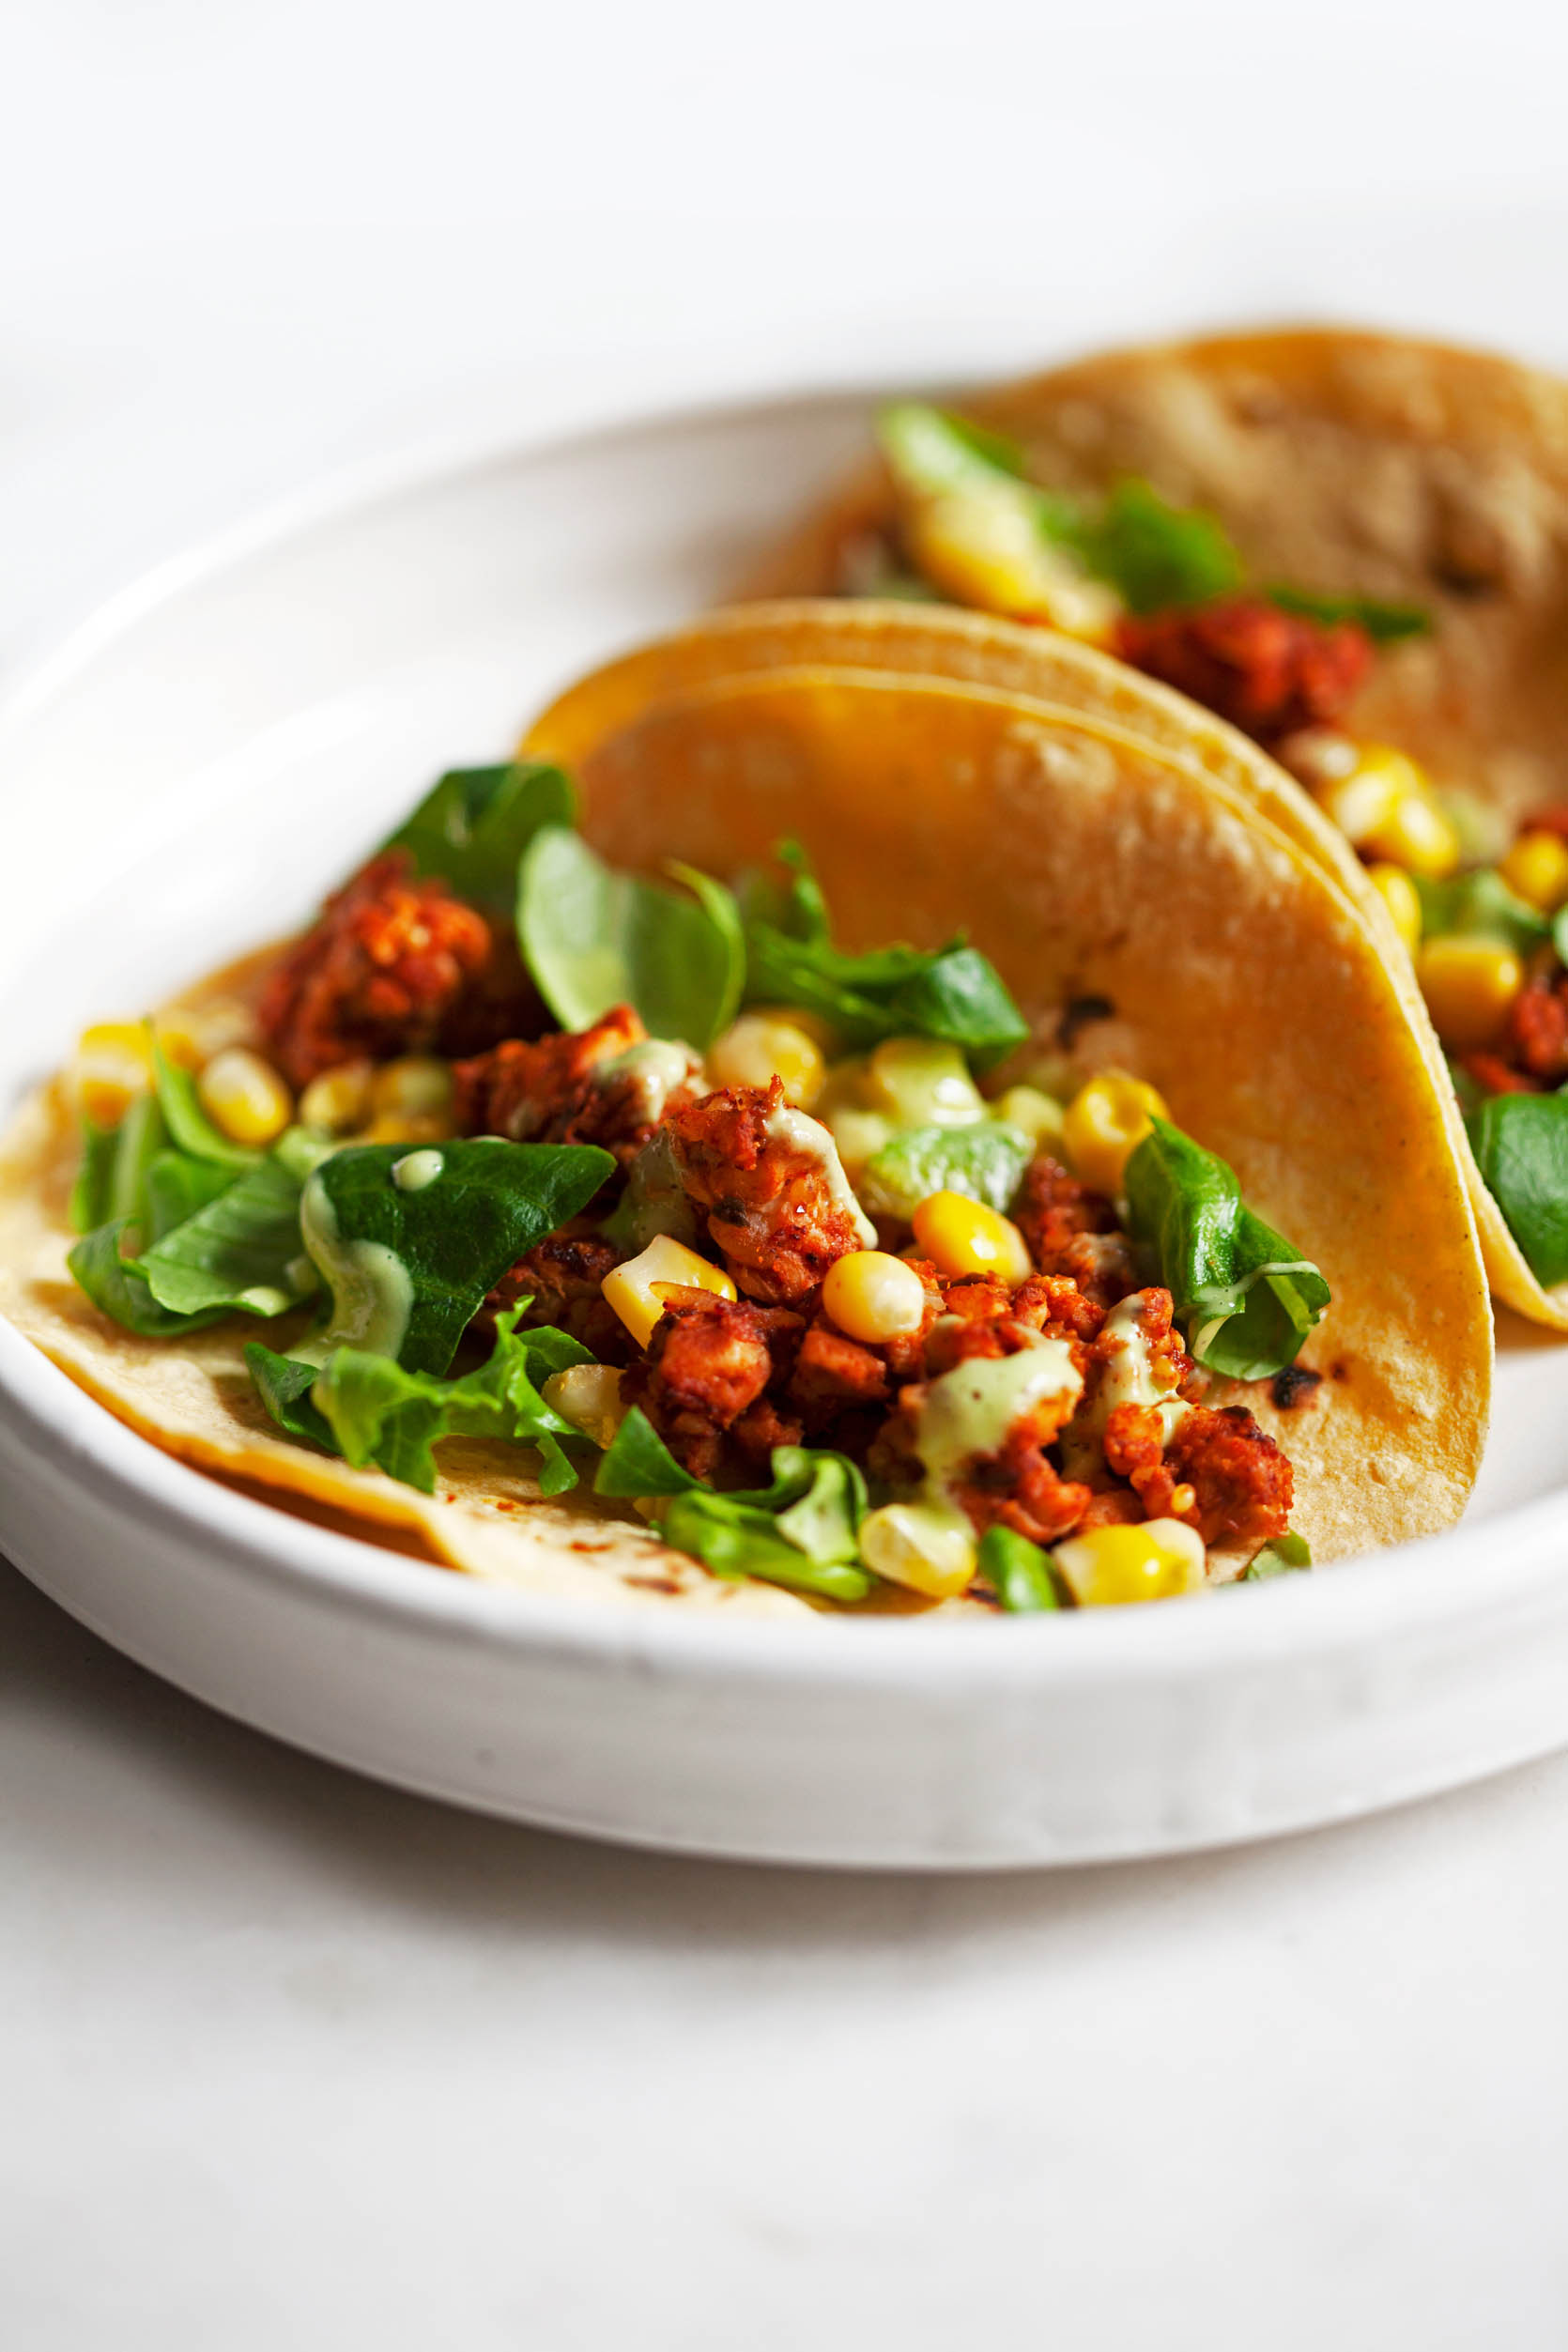 Tangy Chili Lime Tempeh Tacos | The Full Helping